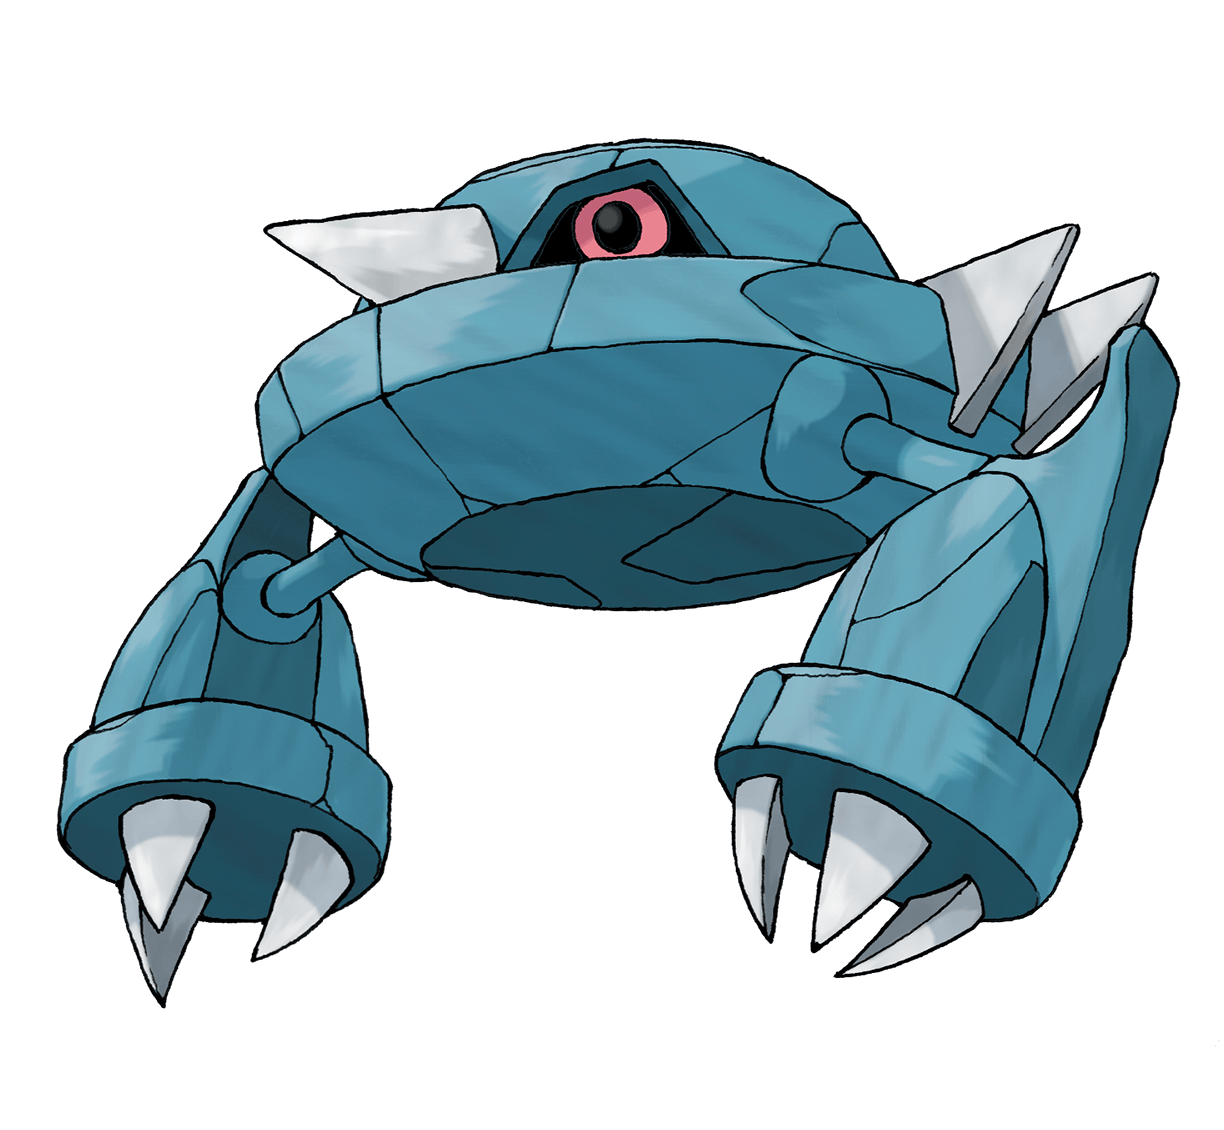 375 METANG | Draw This! (Pokemon Hoenn Region) | Pinterest | Hoenn ...